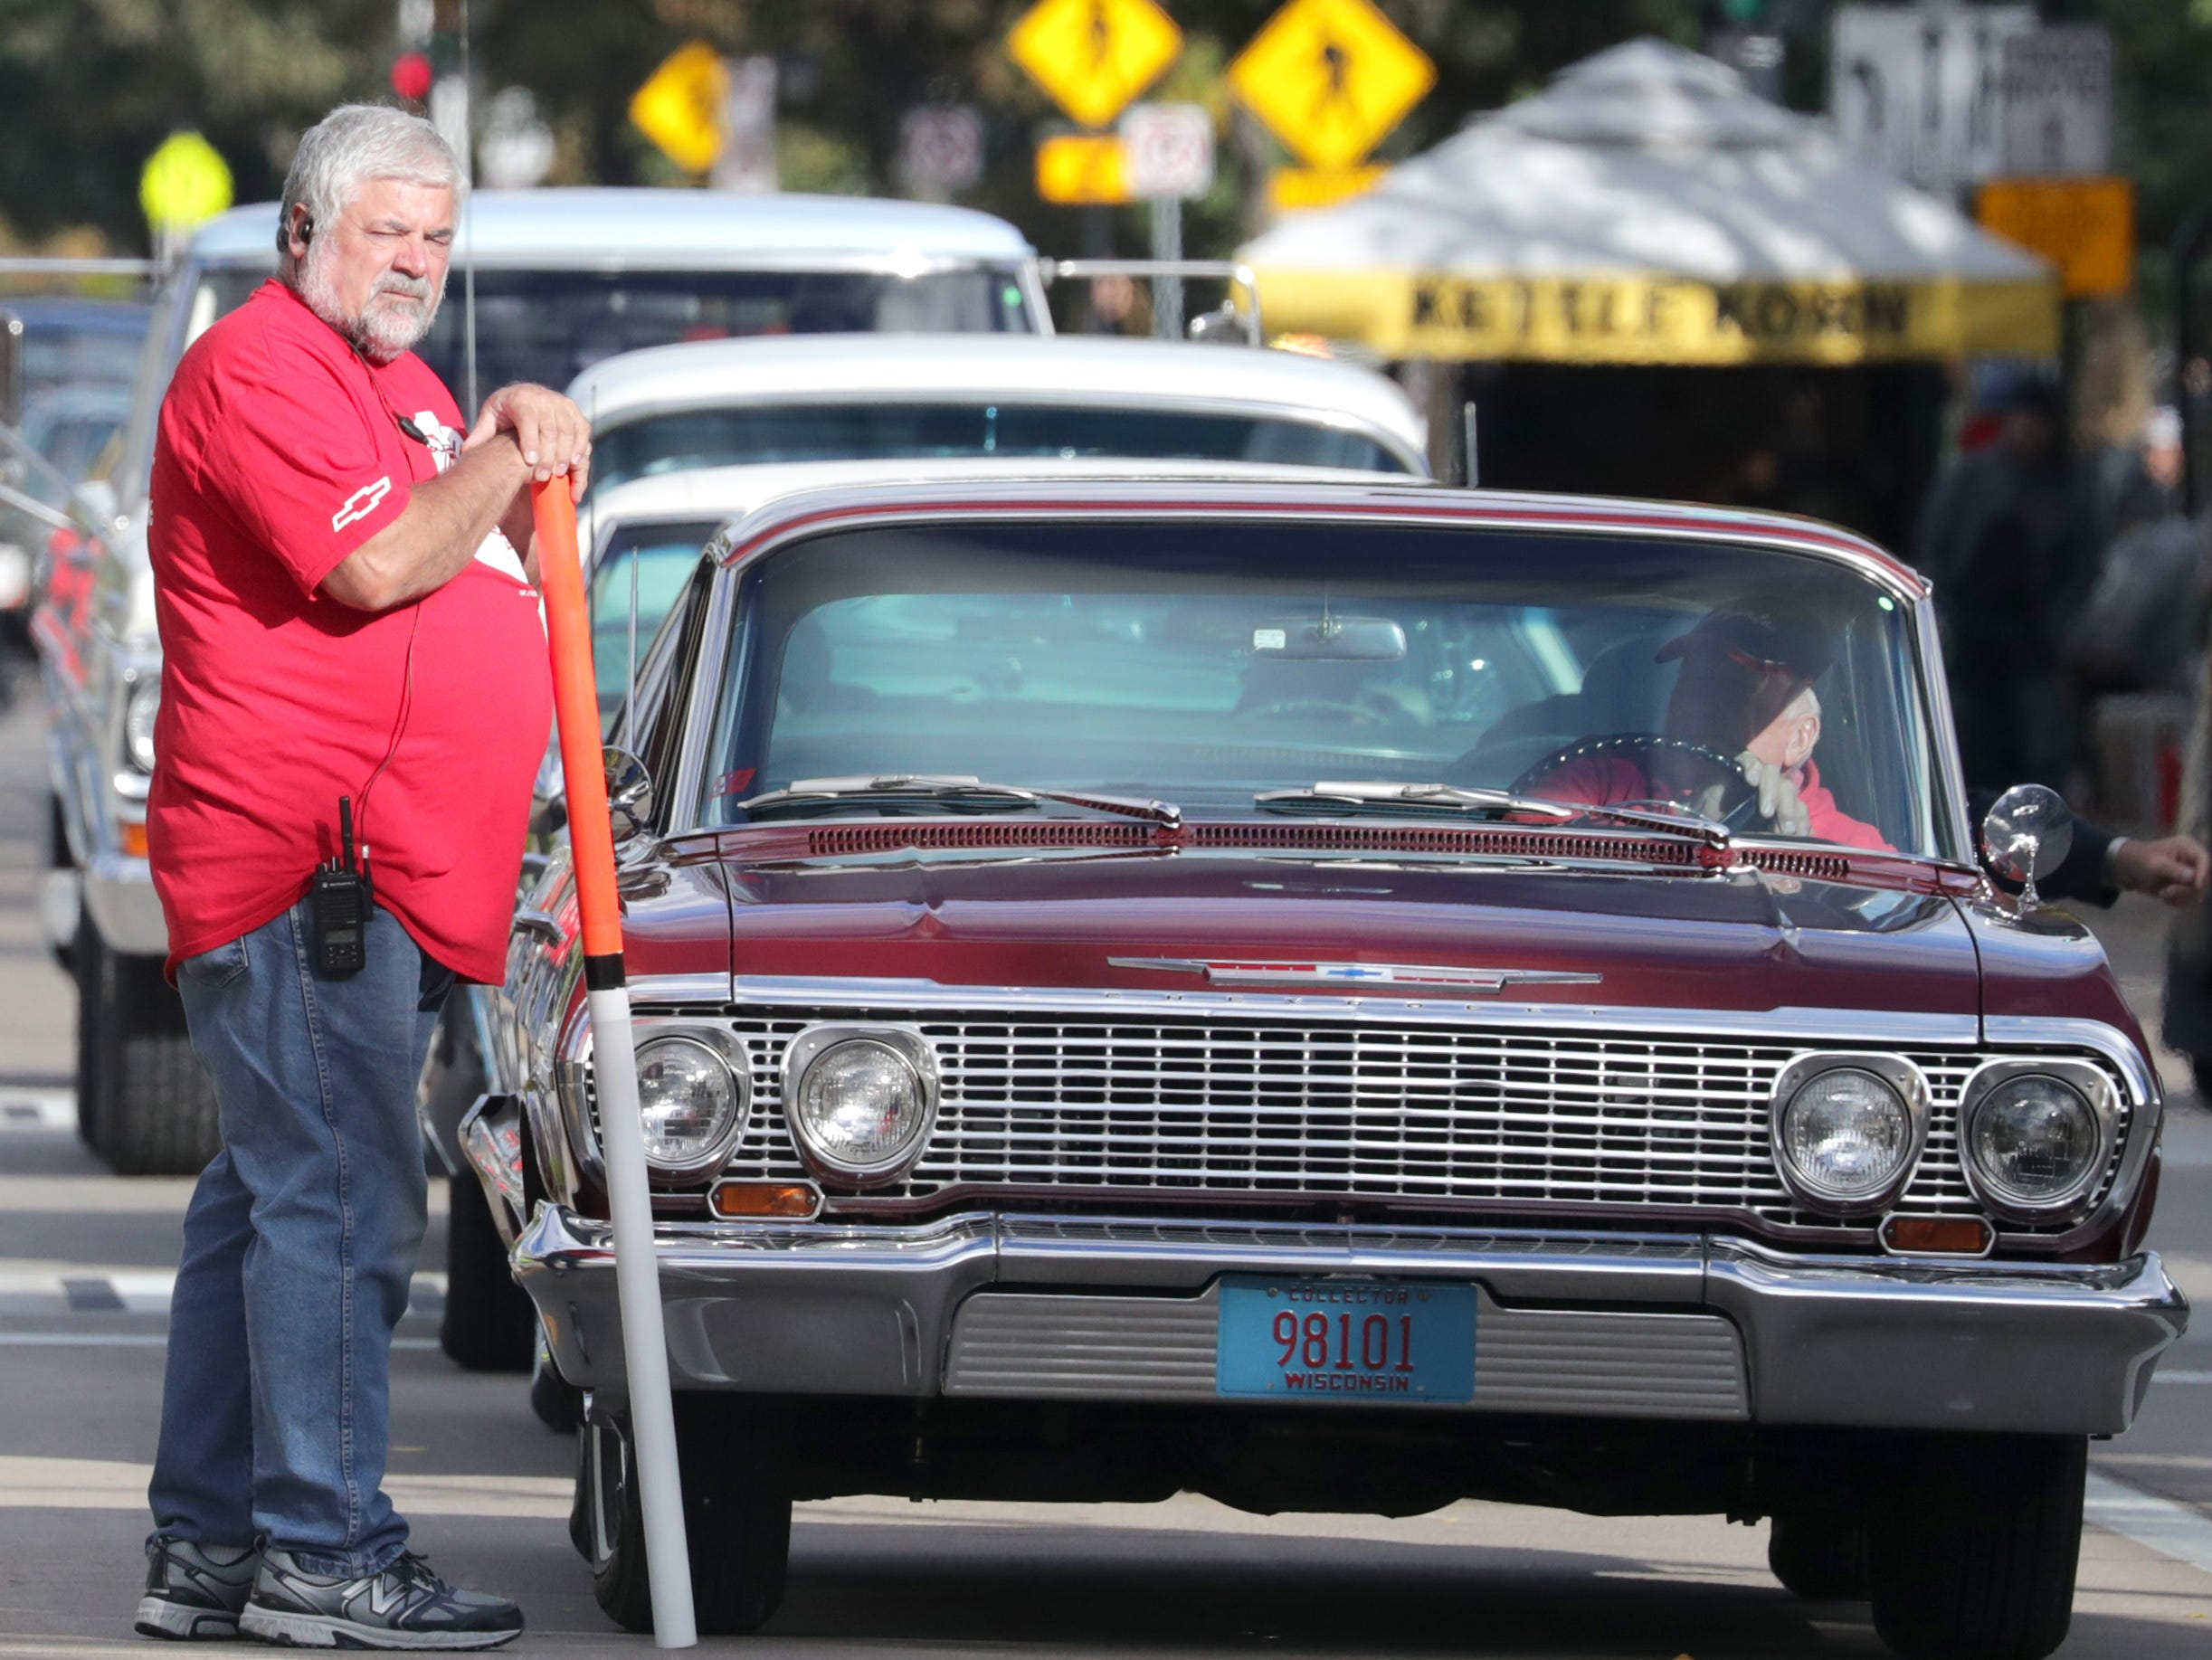 during the annual License to Cruise car show on Friday, September 28, 2018, on College Ave. in Appleton, Wis.